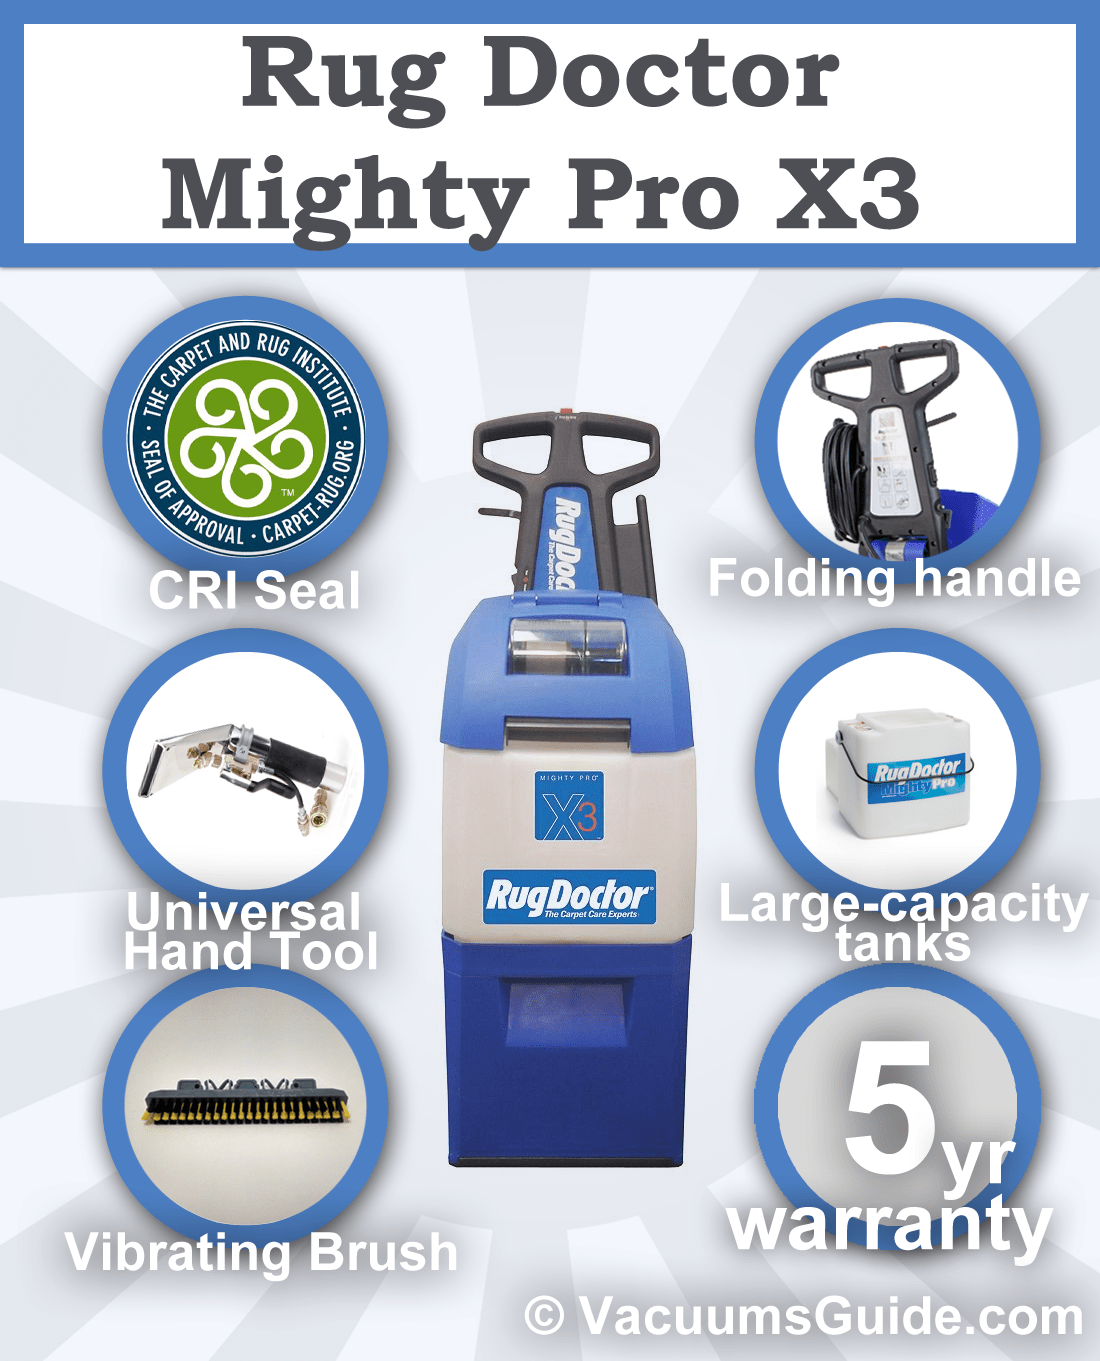 Rug Doctor Mighty Pro X3 features